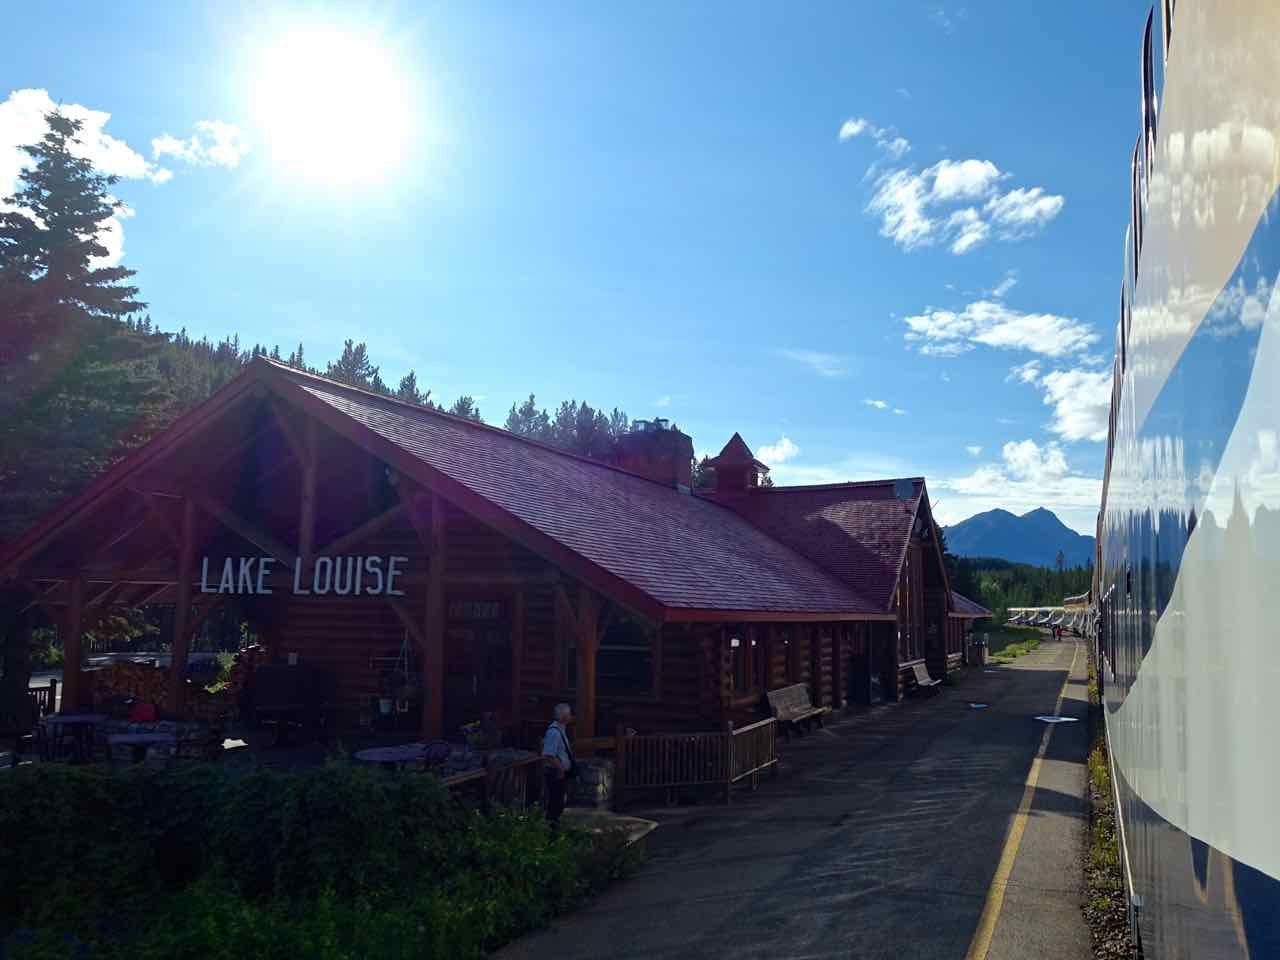 Lake Louise Train Station - seen from the Rocky Mountaineer train | www.rtwgirl.com